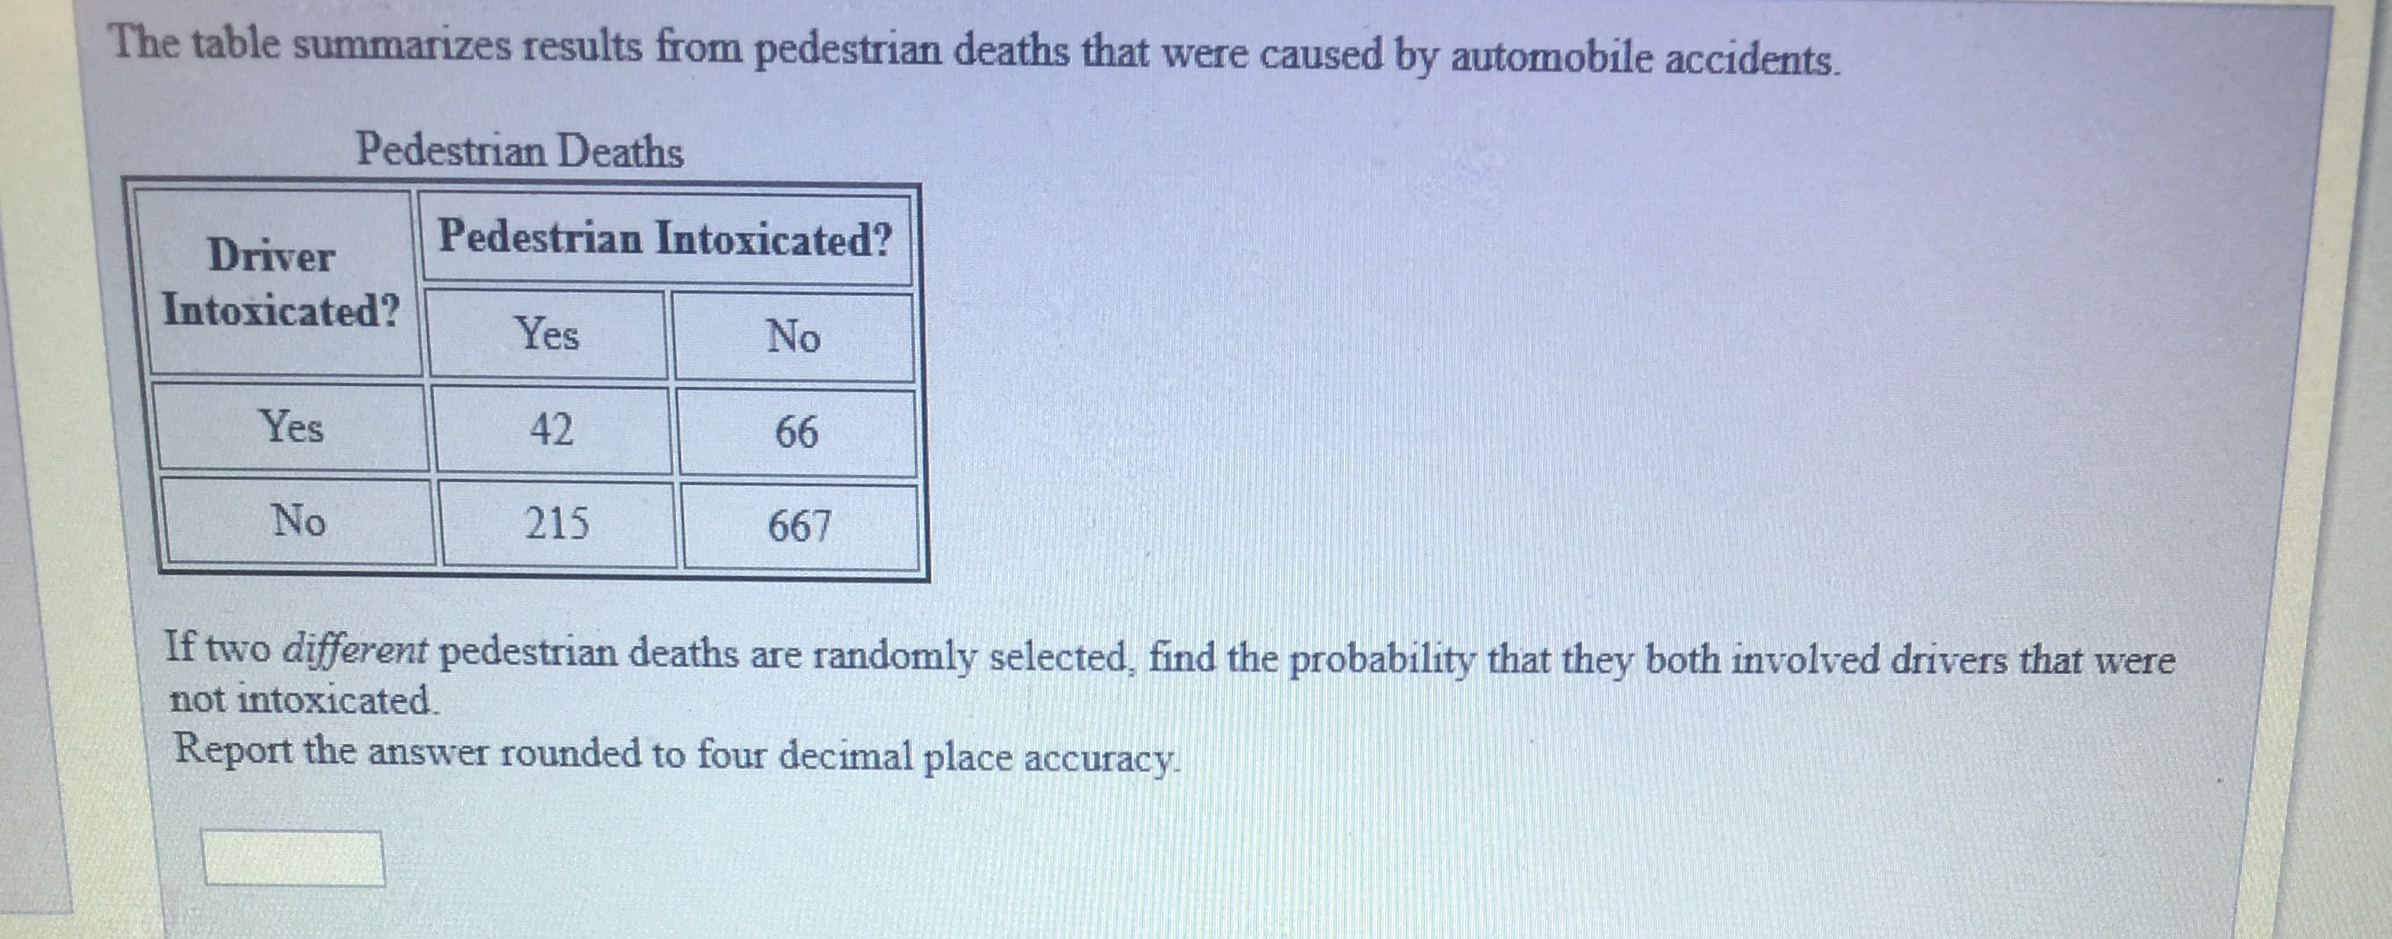 The table summarizes results from pedestrian deaths that were caused by automobile accidents. Pedestrian Deaths Driver Pedestrian Intoxica Intoxicated? Yes 42 215 No Yes No 667 If two different pedestrian deaths are randomly selected, find the probability that they both involved drivers that were not intoxicated. Report the answer rounded to four decimal place accuracy